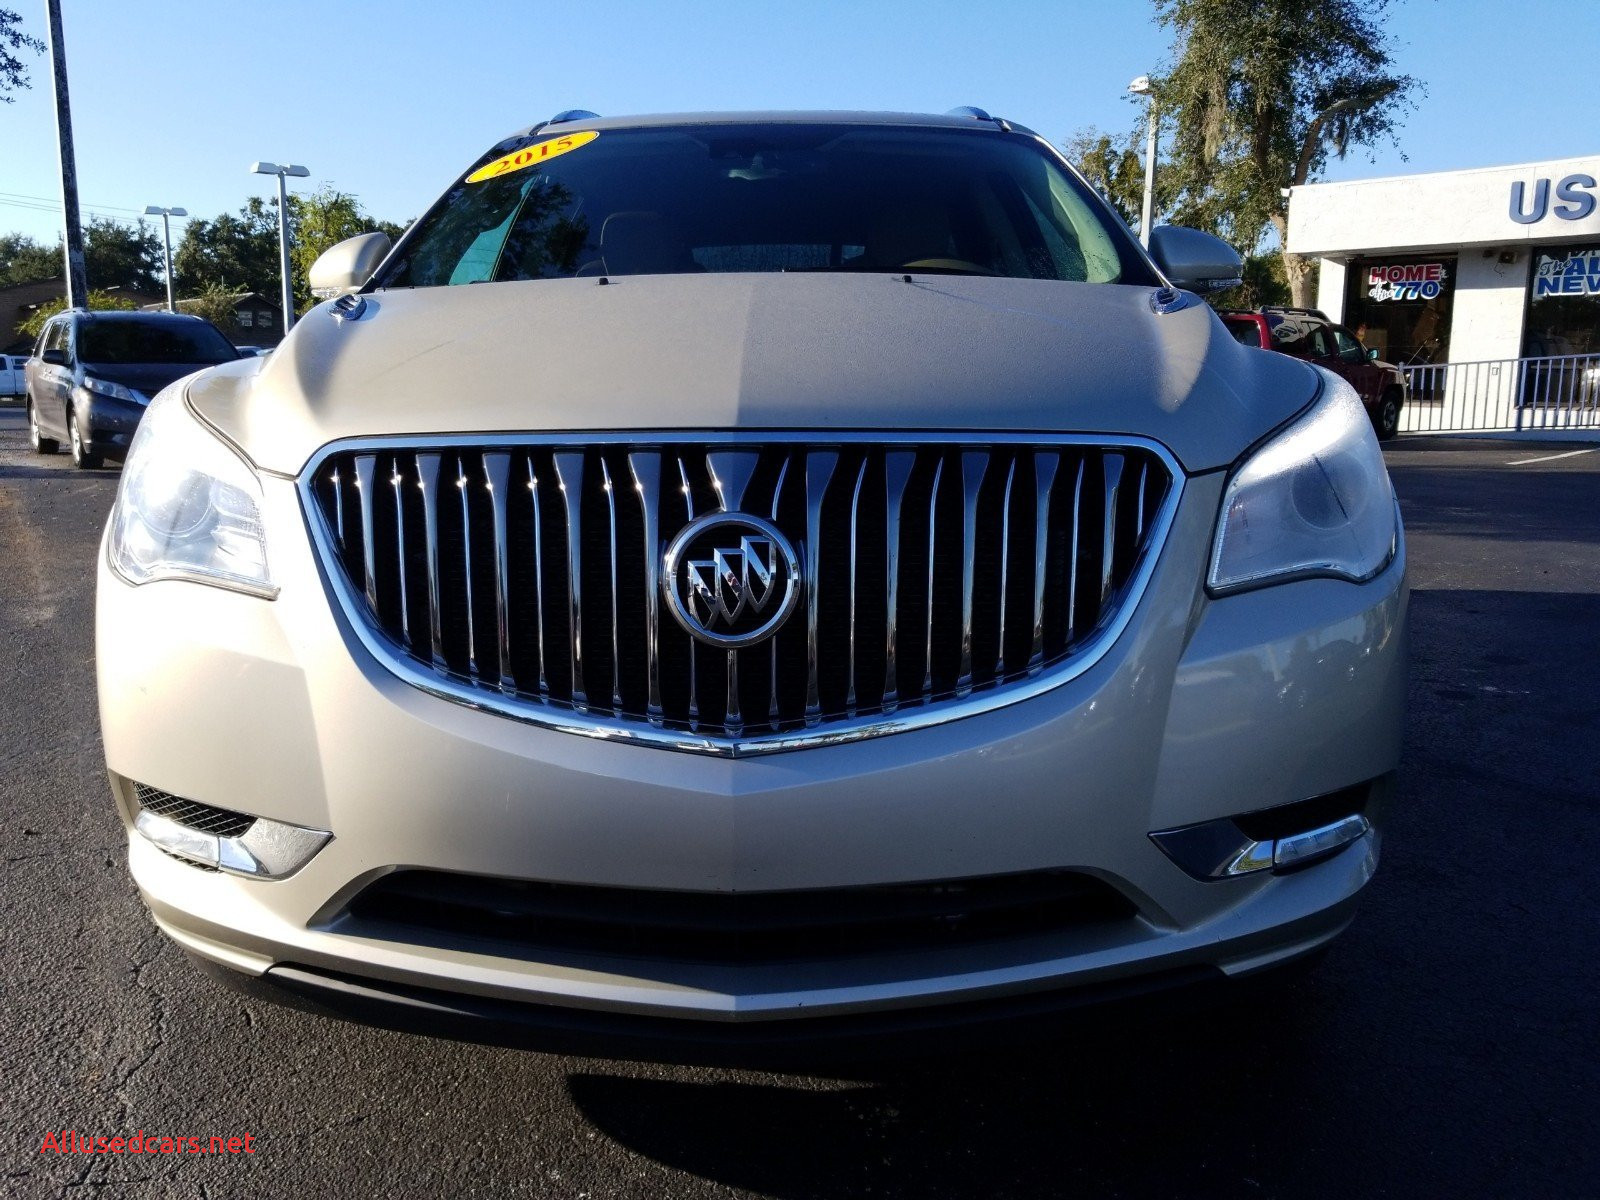 2015 Buick Verano Fresh Used Buick for Sale In Daytona Beach Fl Ritchey Autos